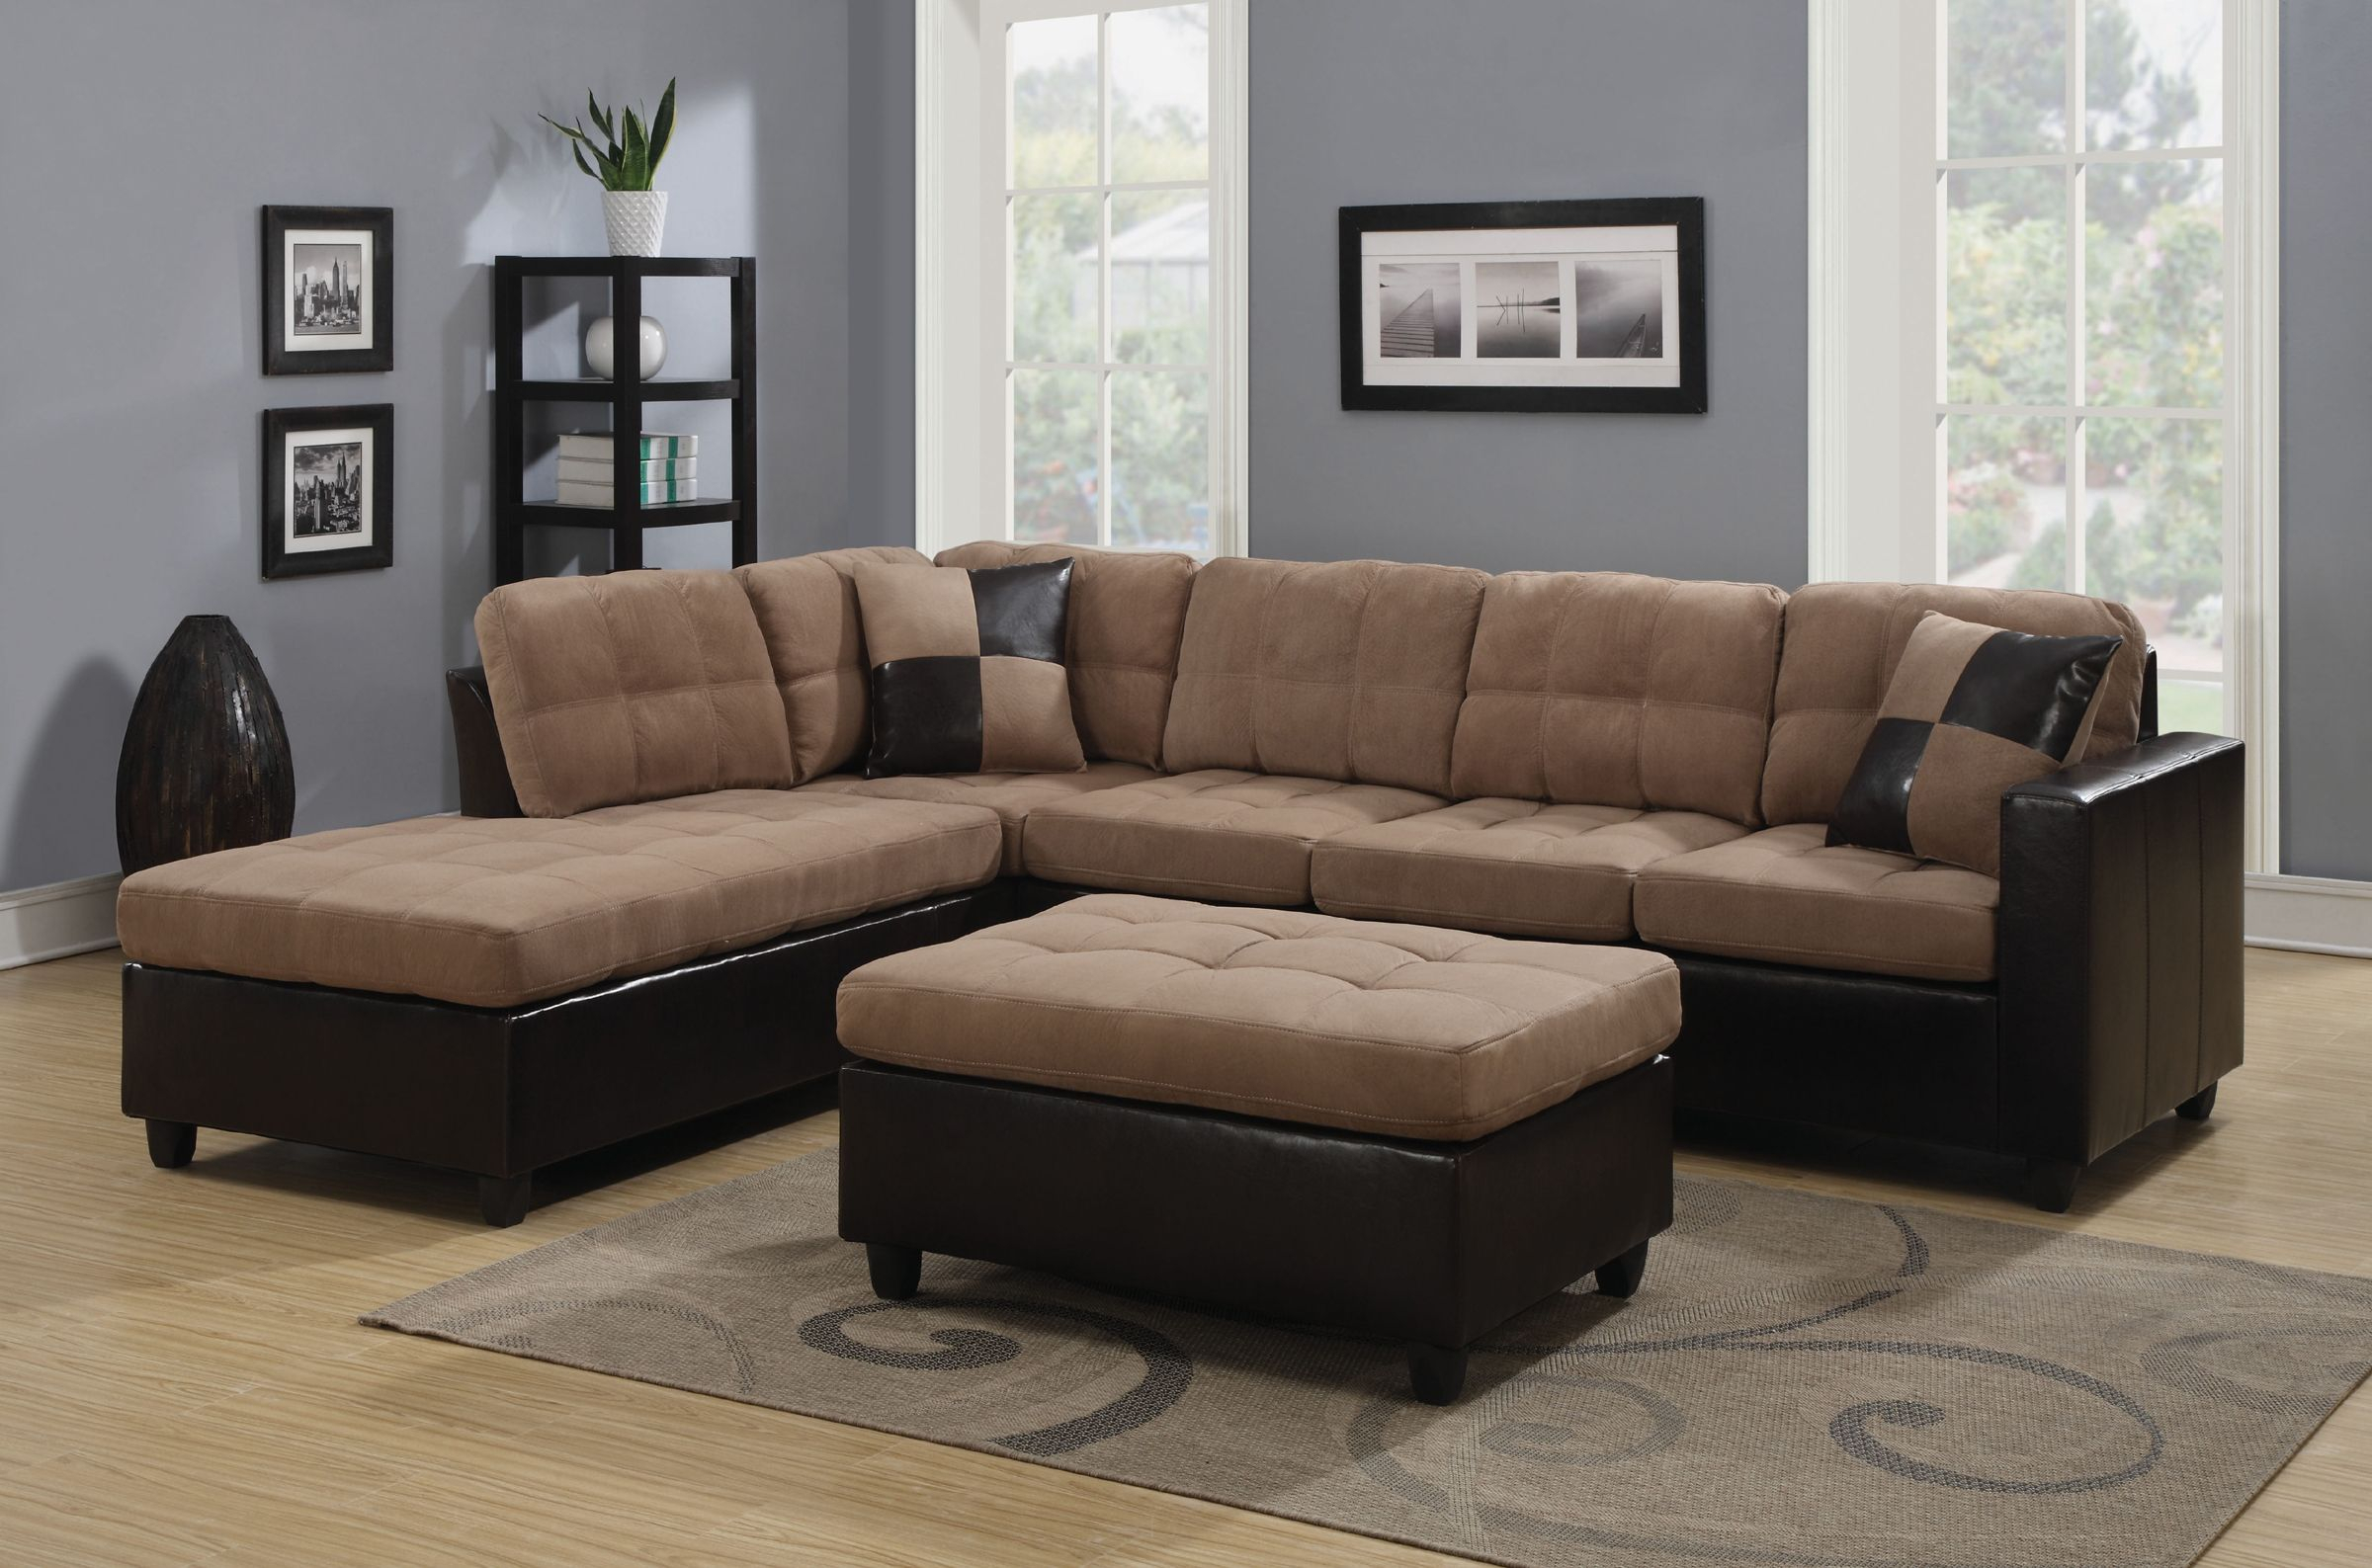 Reversible Tan Microfiber Sectional Sofa With Chaise Set Throughout Clifton Reversible Sectional Sofas With Pillows (View 5 of 15)